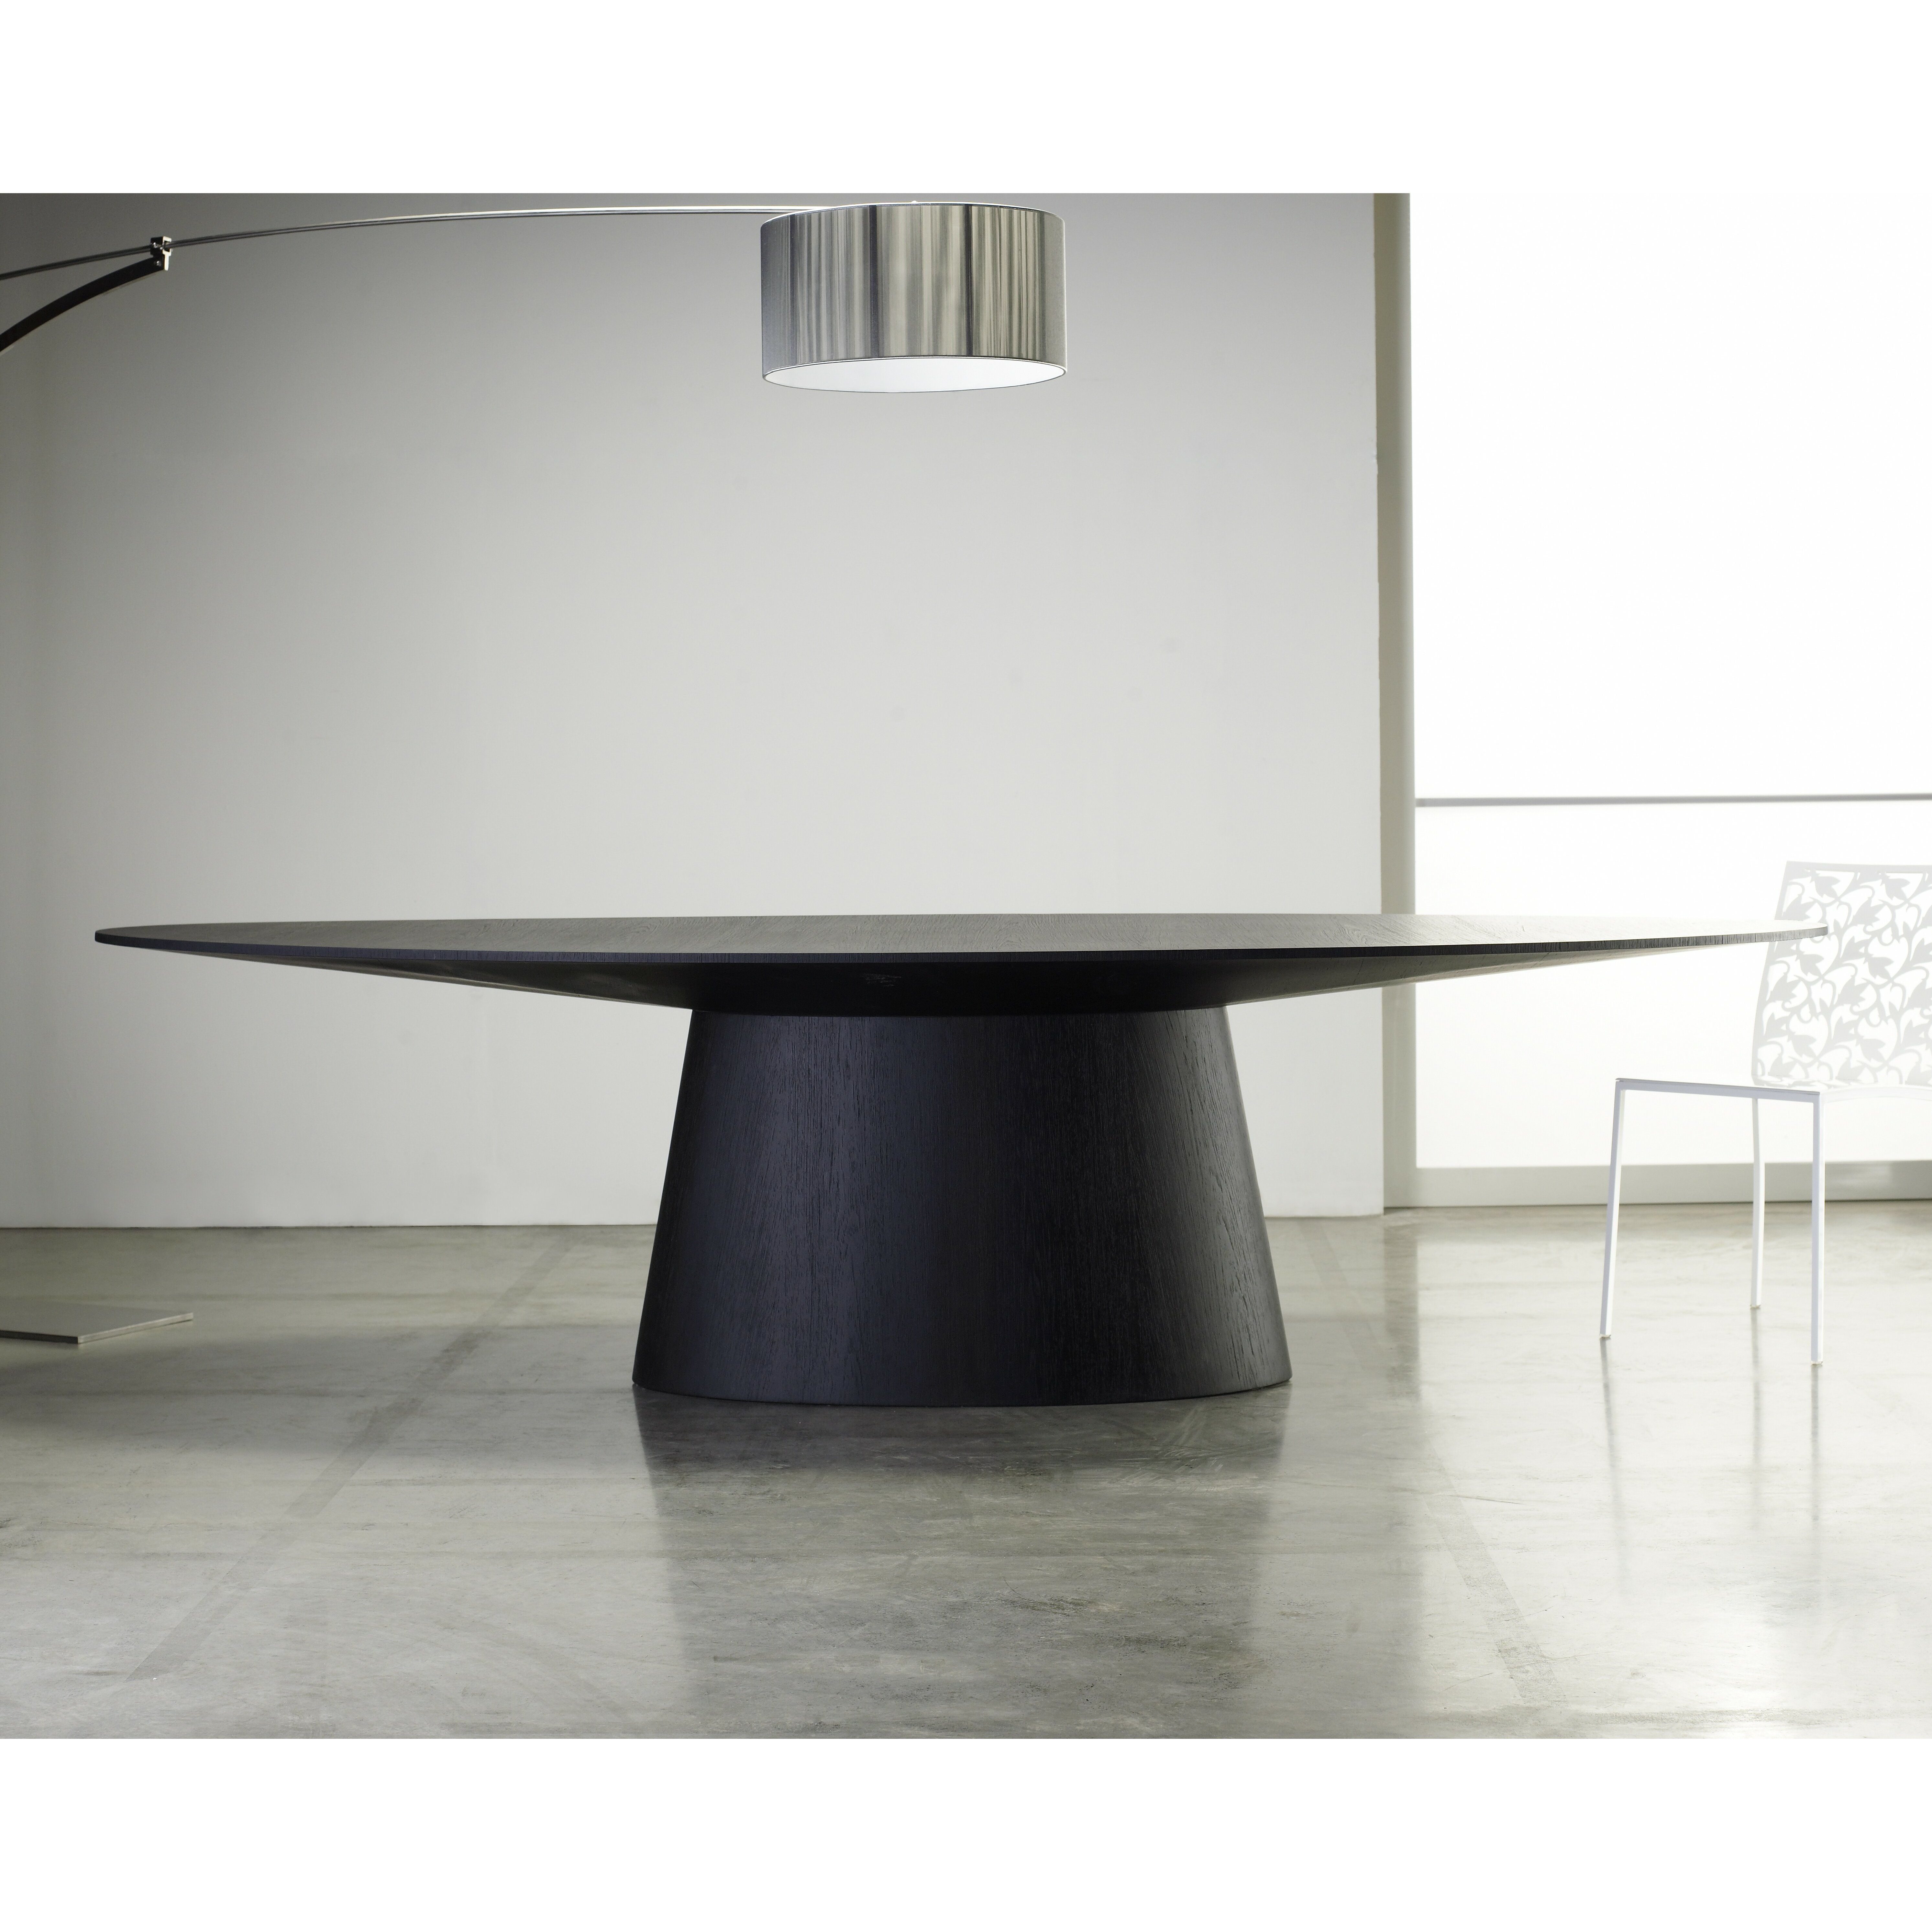 Image Result For Modern Dining Table Round Wooda